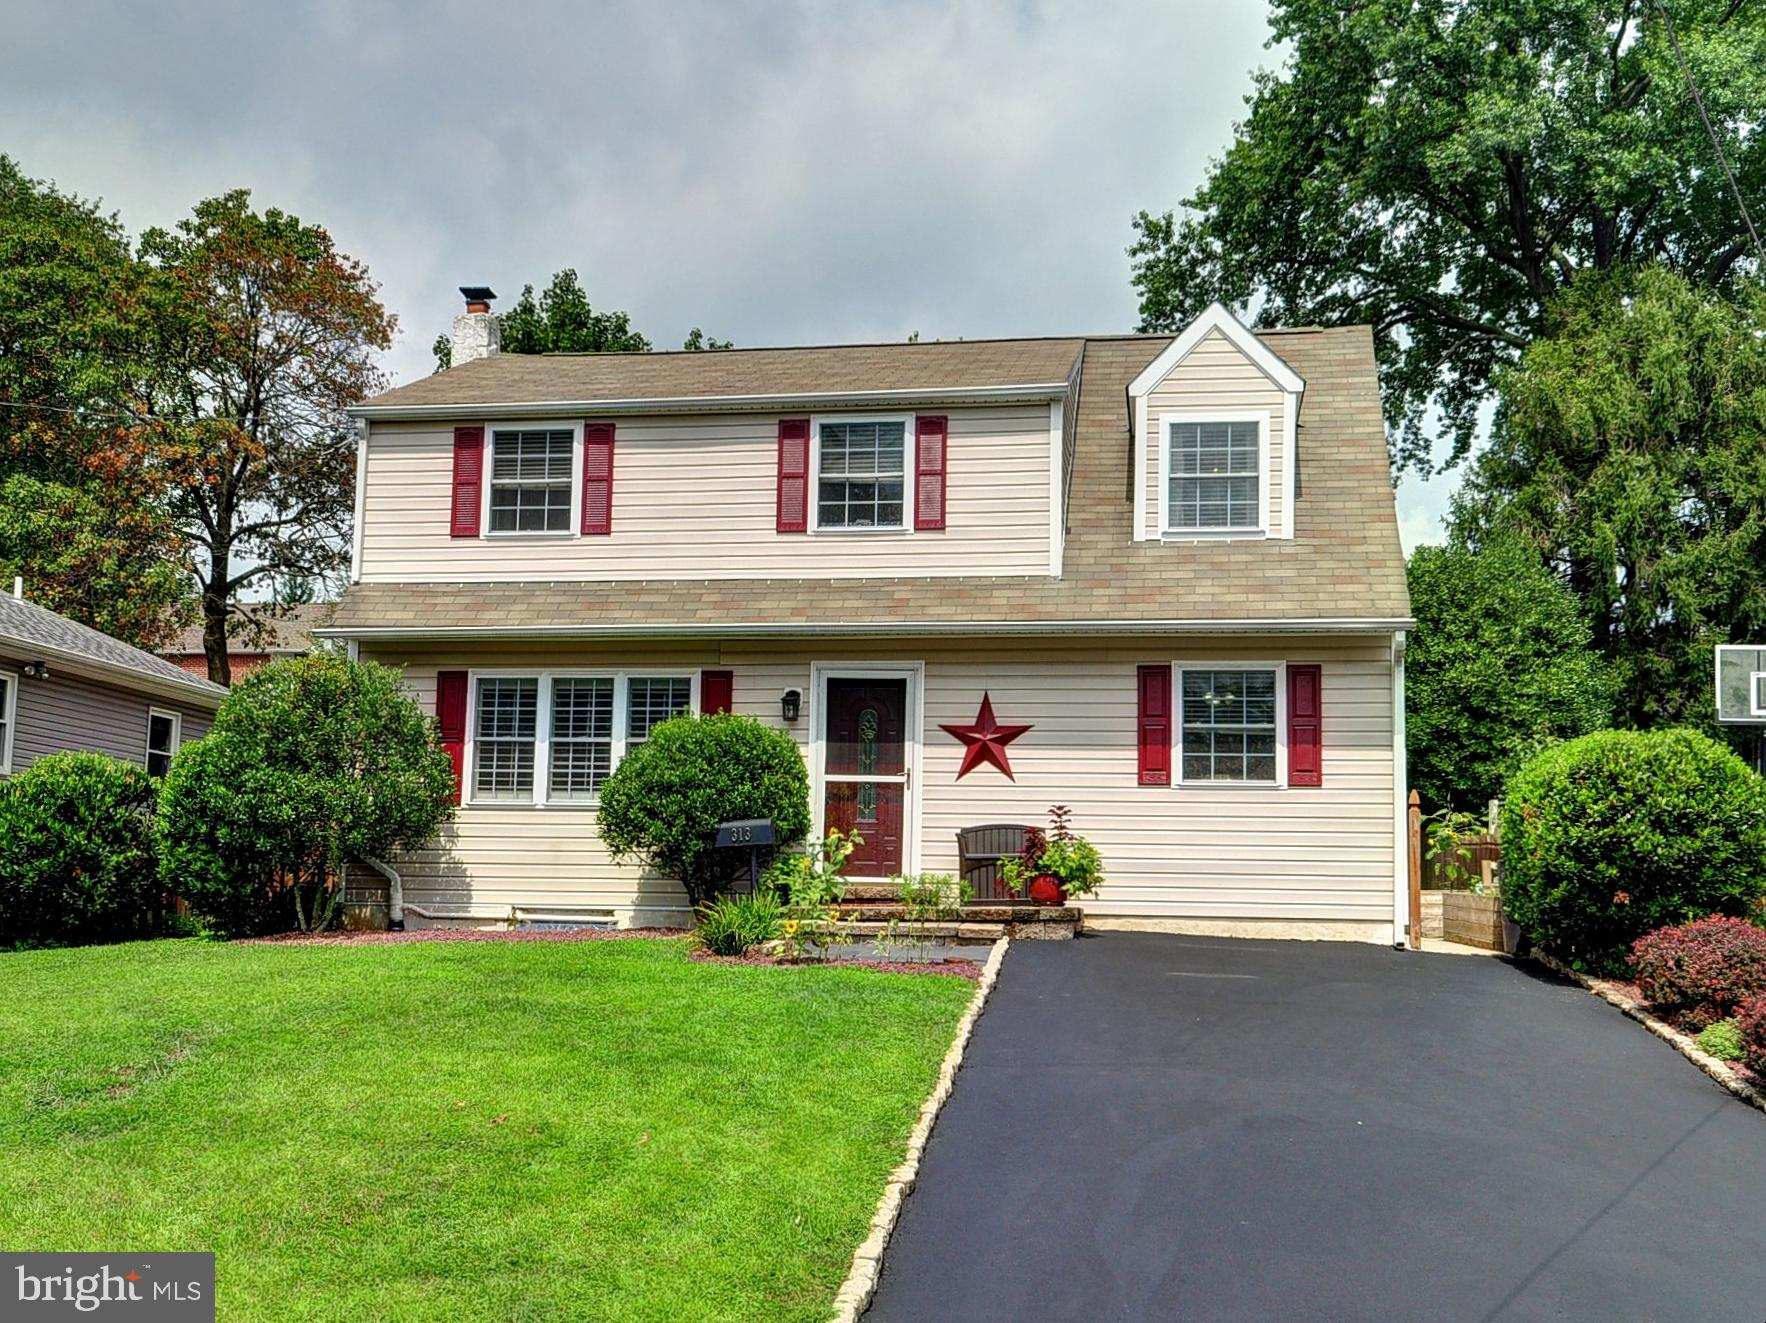 313 INMAN TERRACE, WILLOW GROVE, PA 19090